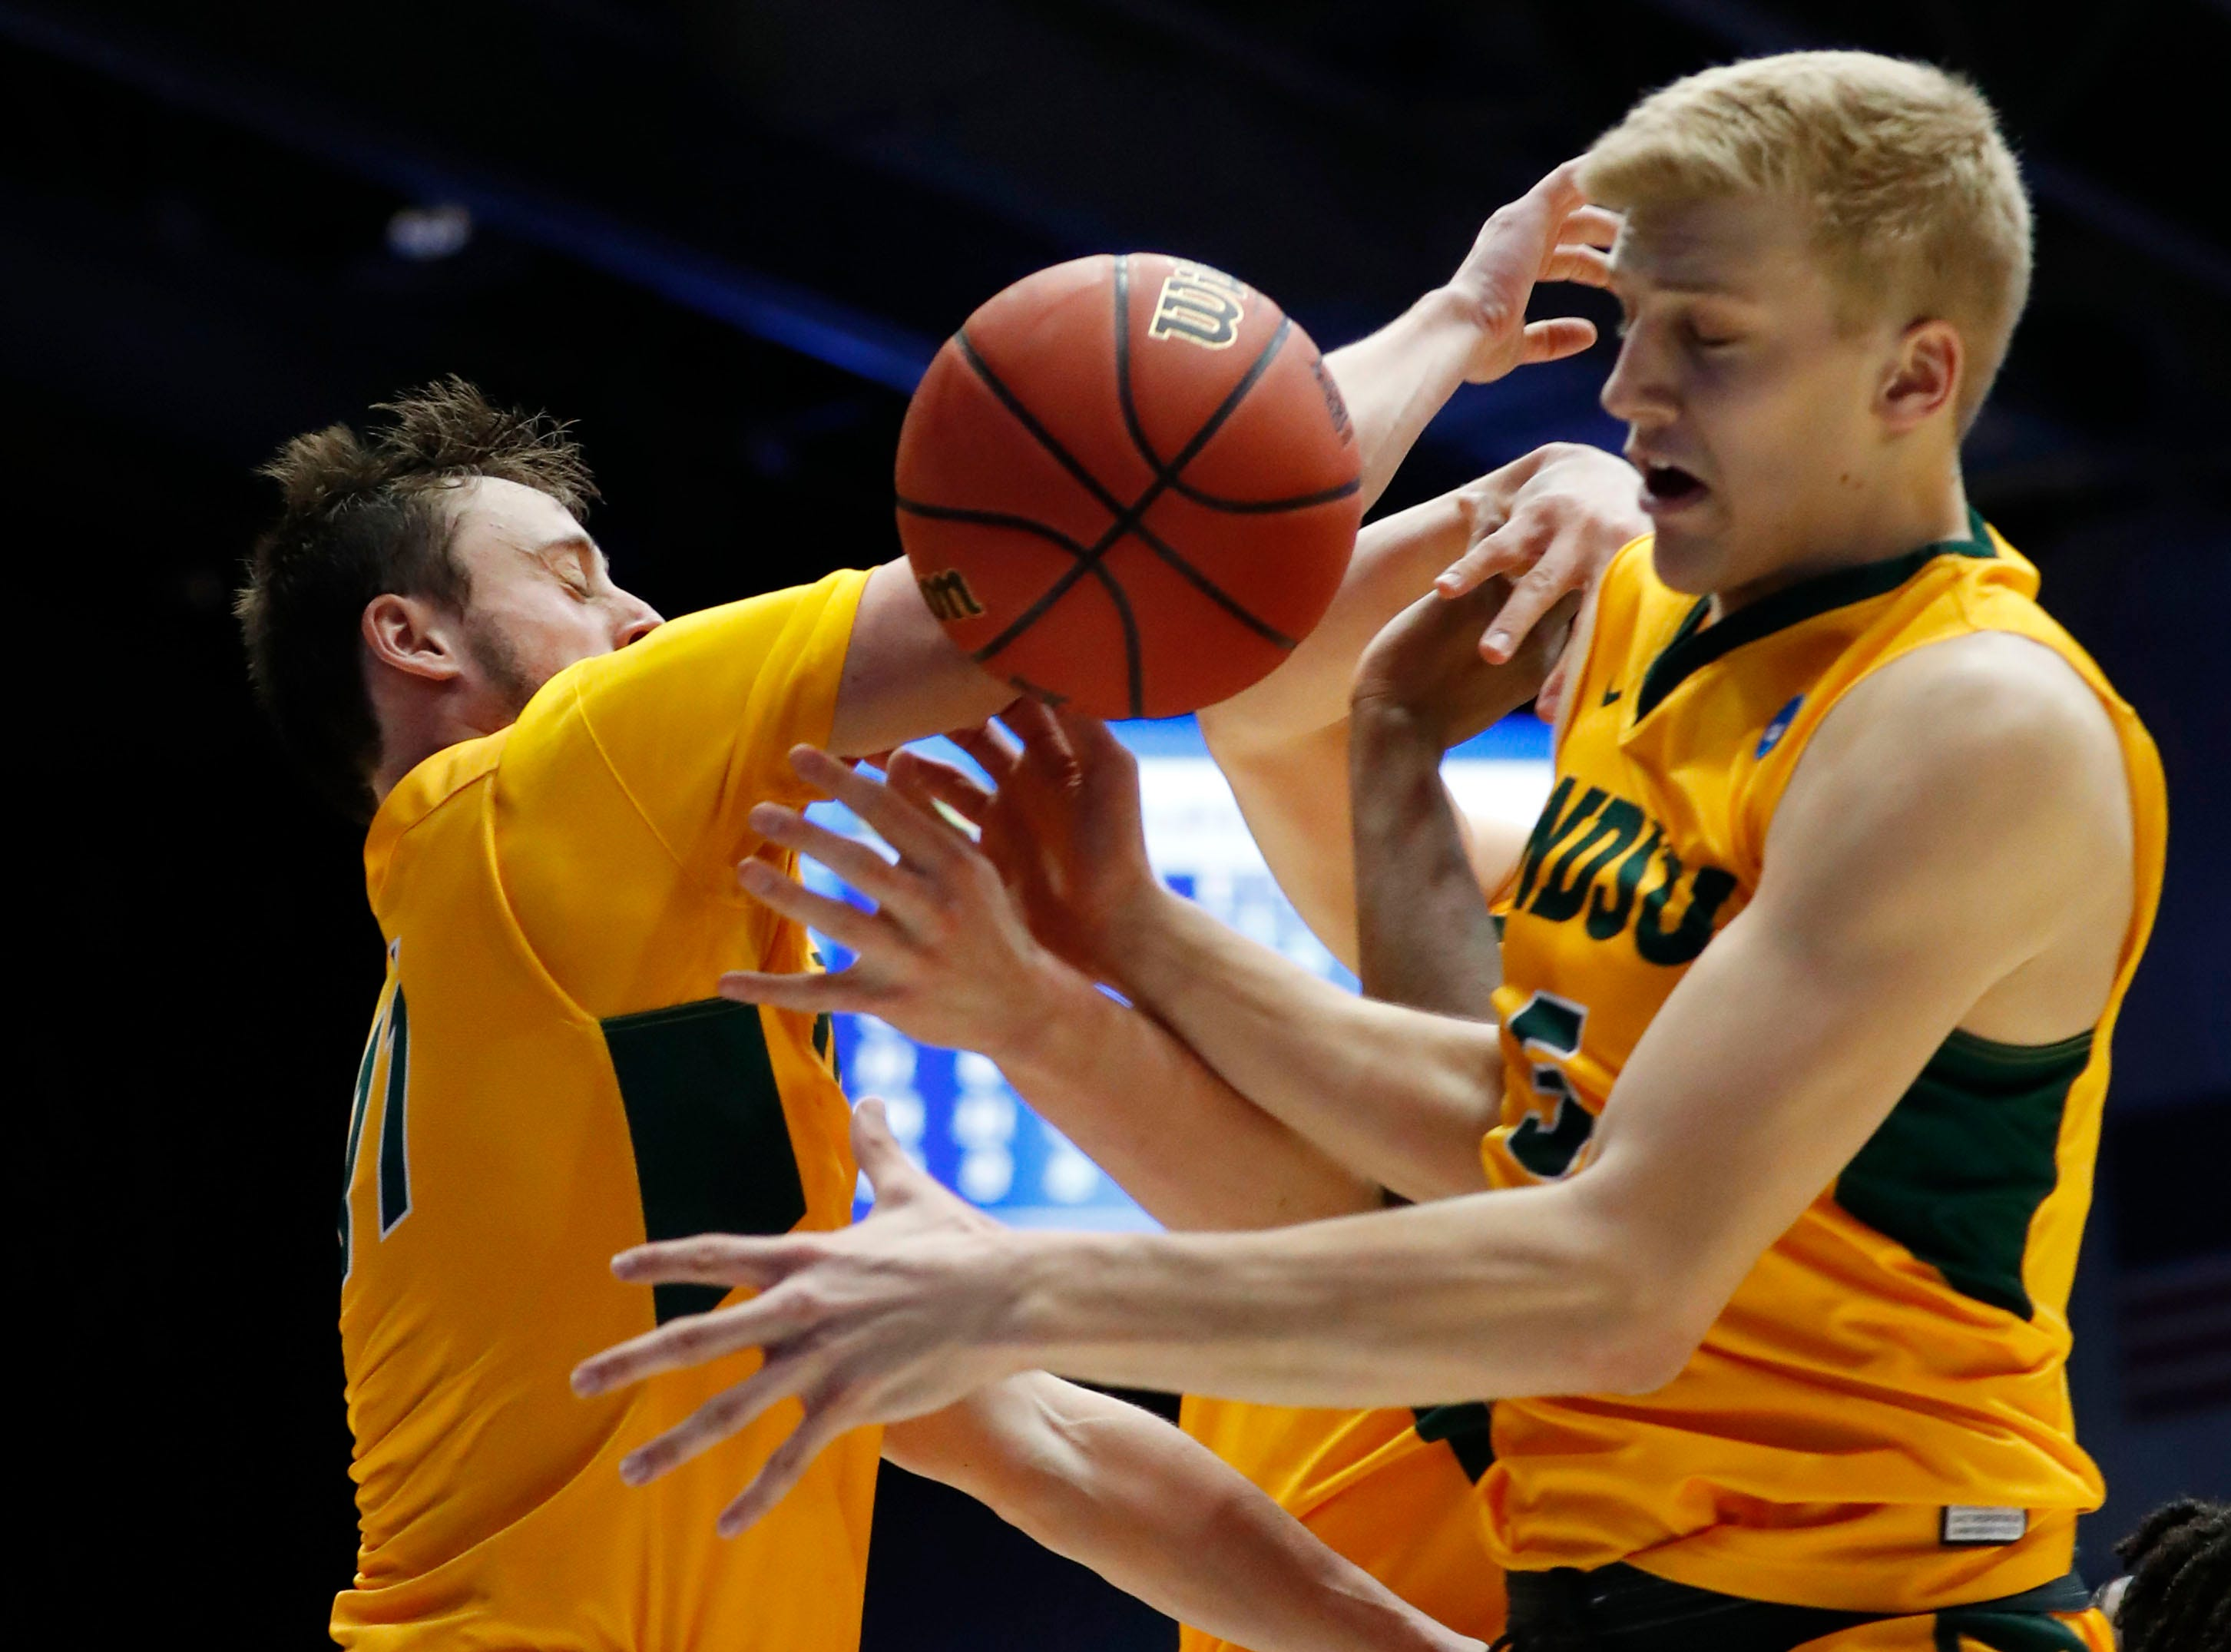 North Dakota State Bison guard Jared Samuelson (11) and guard Sam Griesel (5) attempt to get a rebound in the second half against the North Carolina Central Eagles.